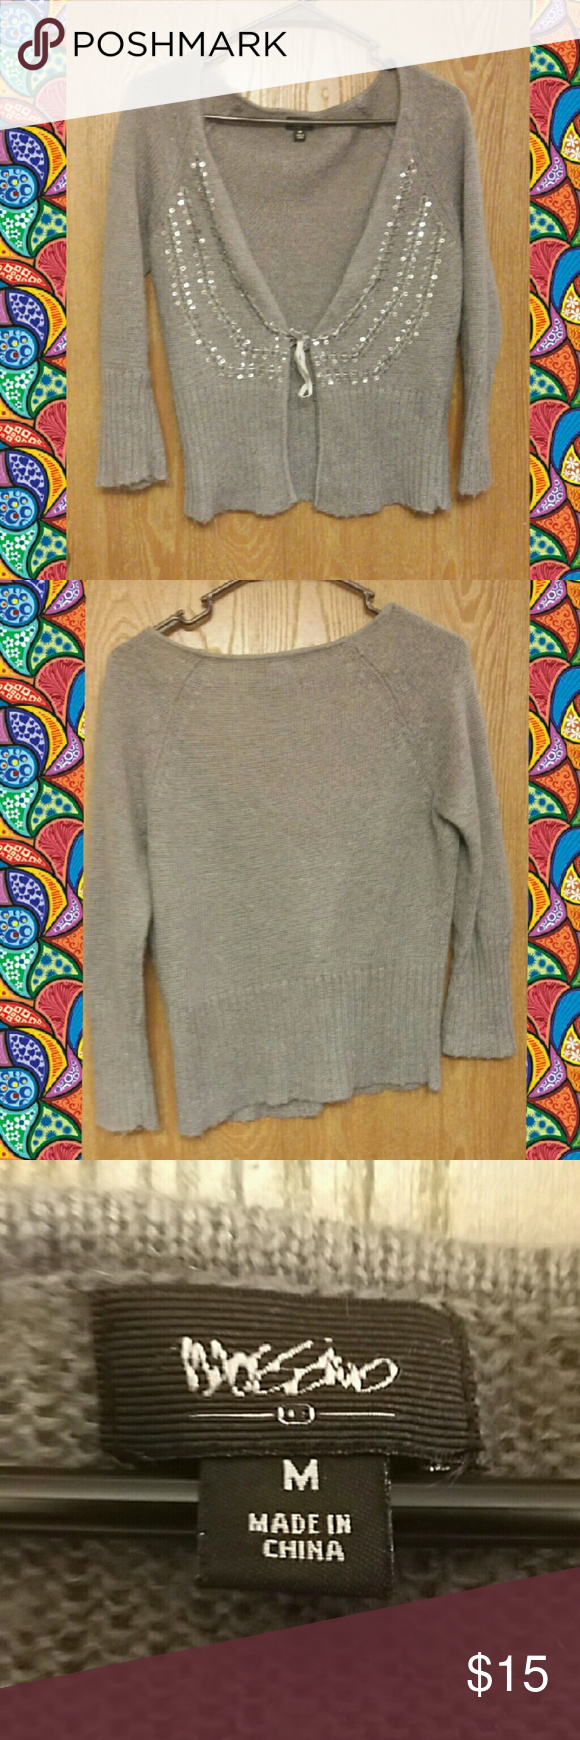 Mossimo grey sequin cardigan sweater. Used a bit but still in good condition. No rips or tears. Has a little Pilling as it's a wool cardigan whixh can be handled, but still great condition.sequins are intact. Mossimo Supply Co Sweaters Cardigans